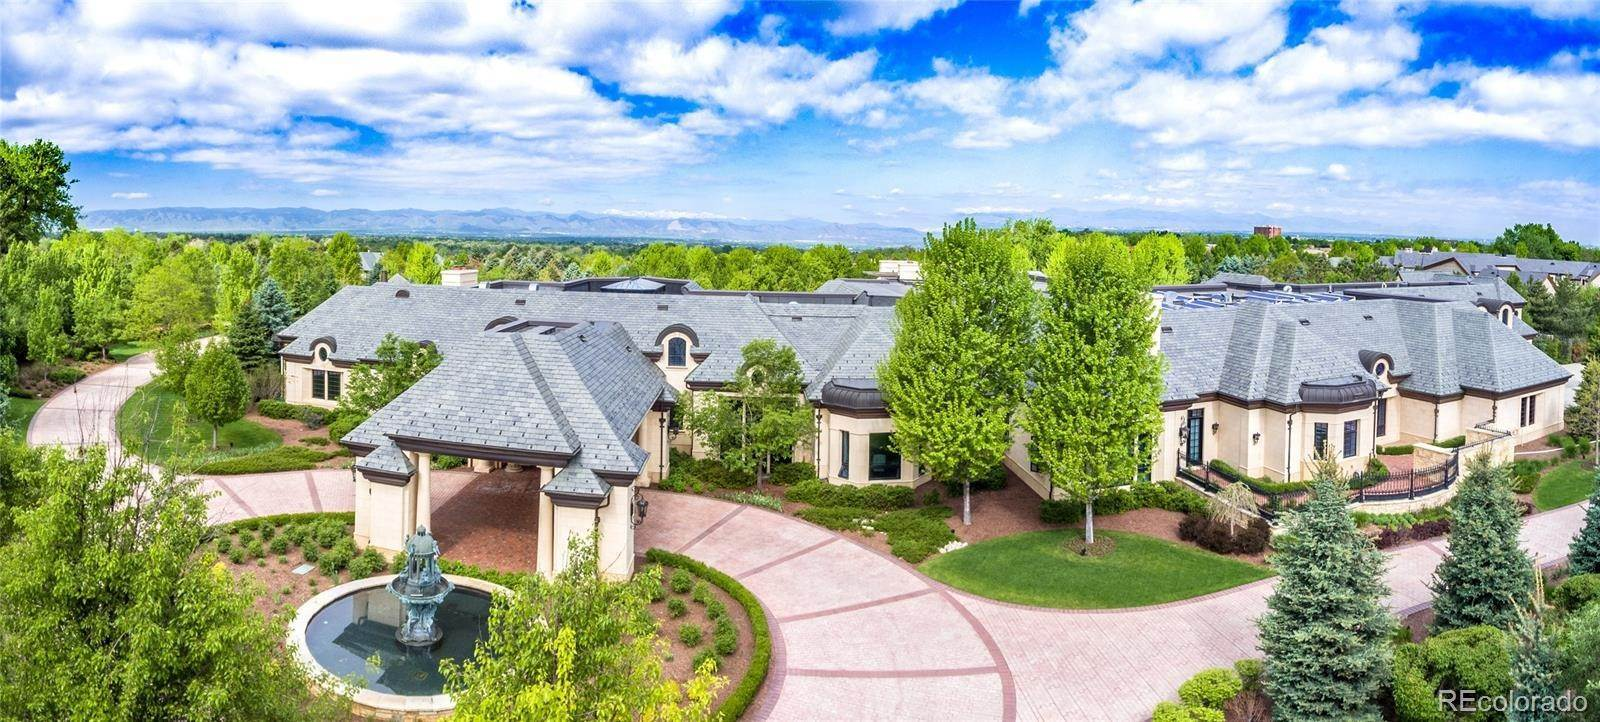 Single Family Homes for Sale at 8 Cherry Hills Park Drive Cherry Hills Village, Colorado 80113 United States